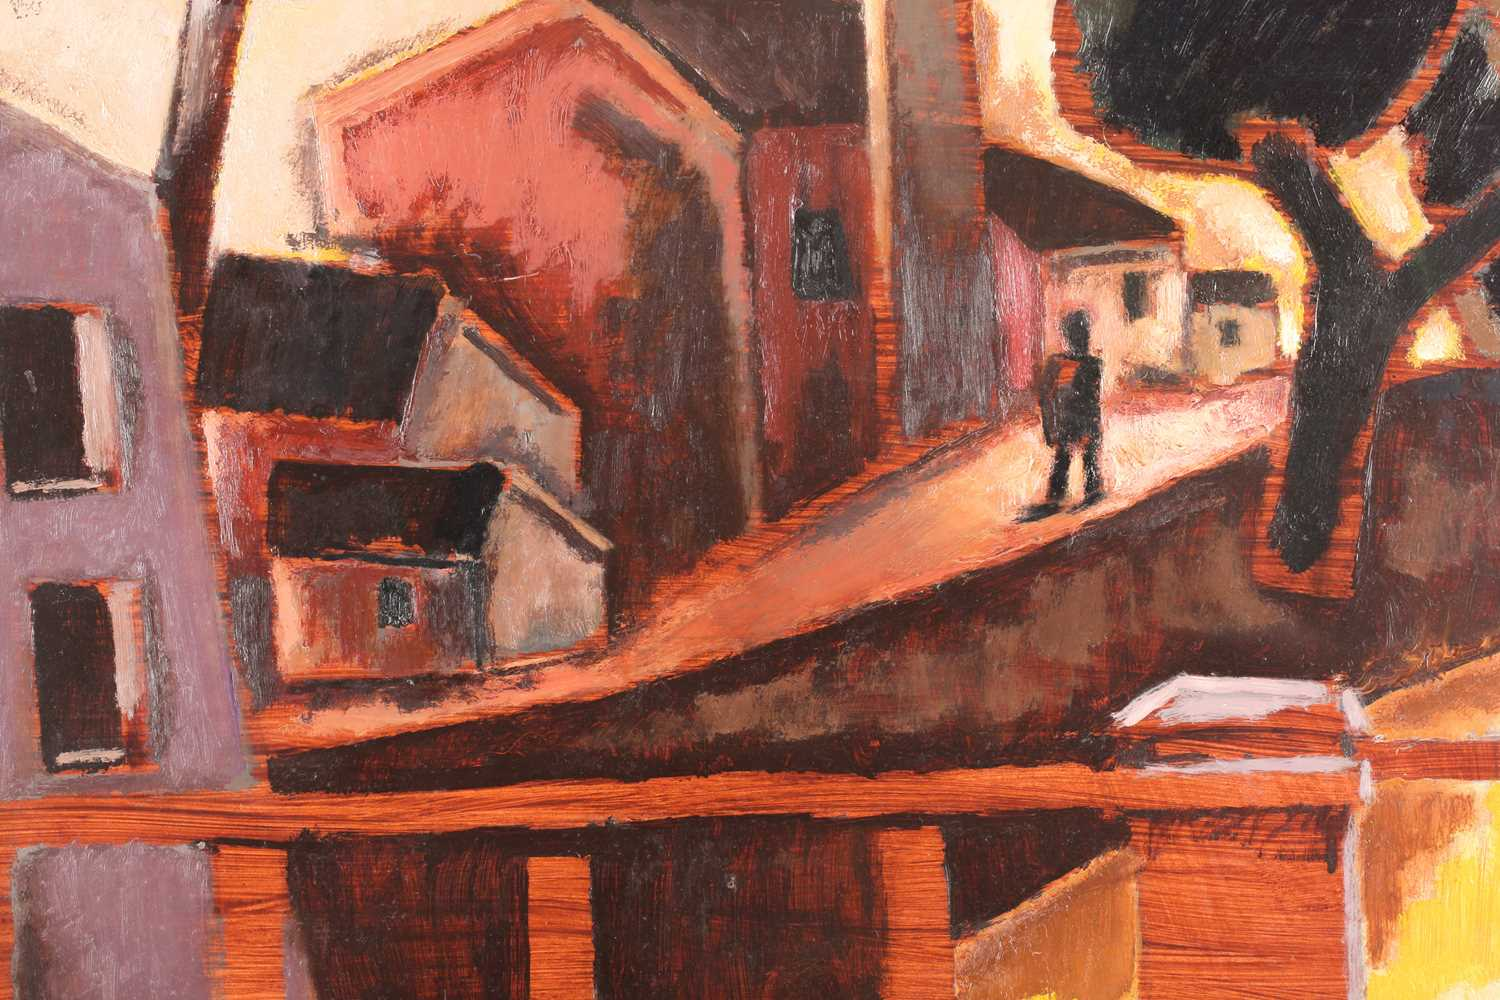 Josef Herman (1911-2000) Polish/British, 'The Little Street', 1953 (and later), a figure before - Image 4 of 6